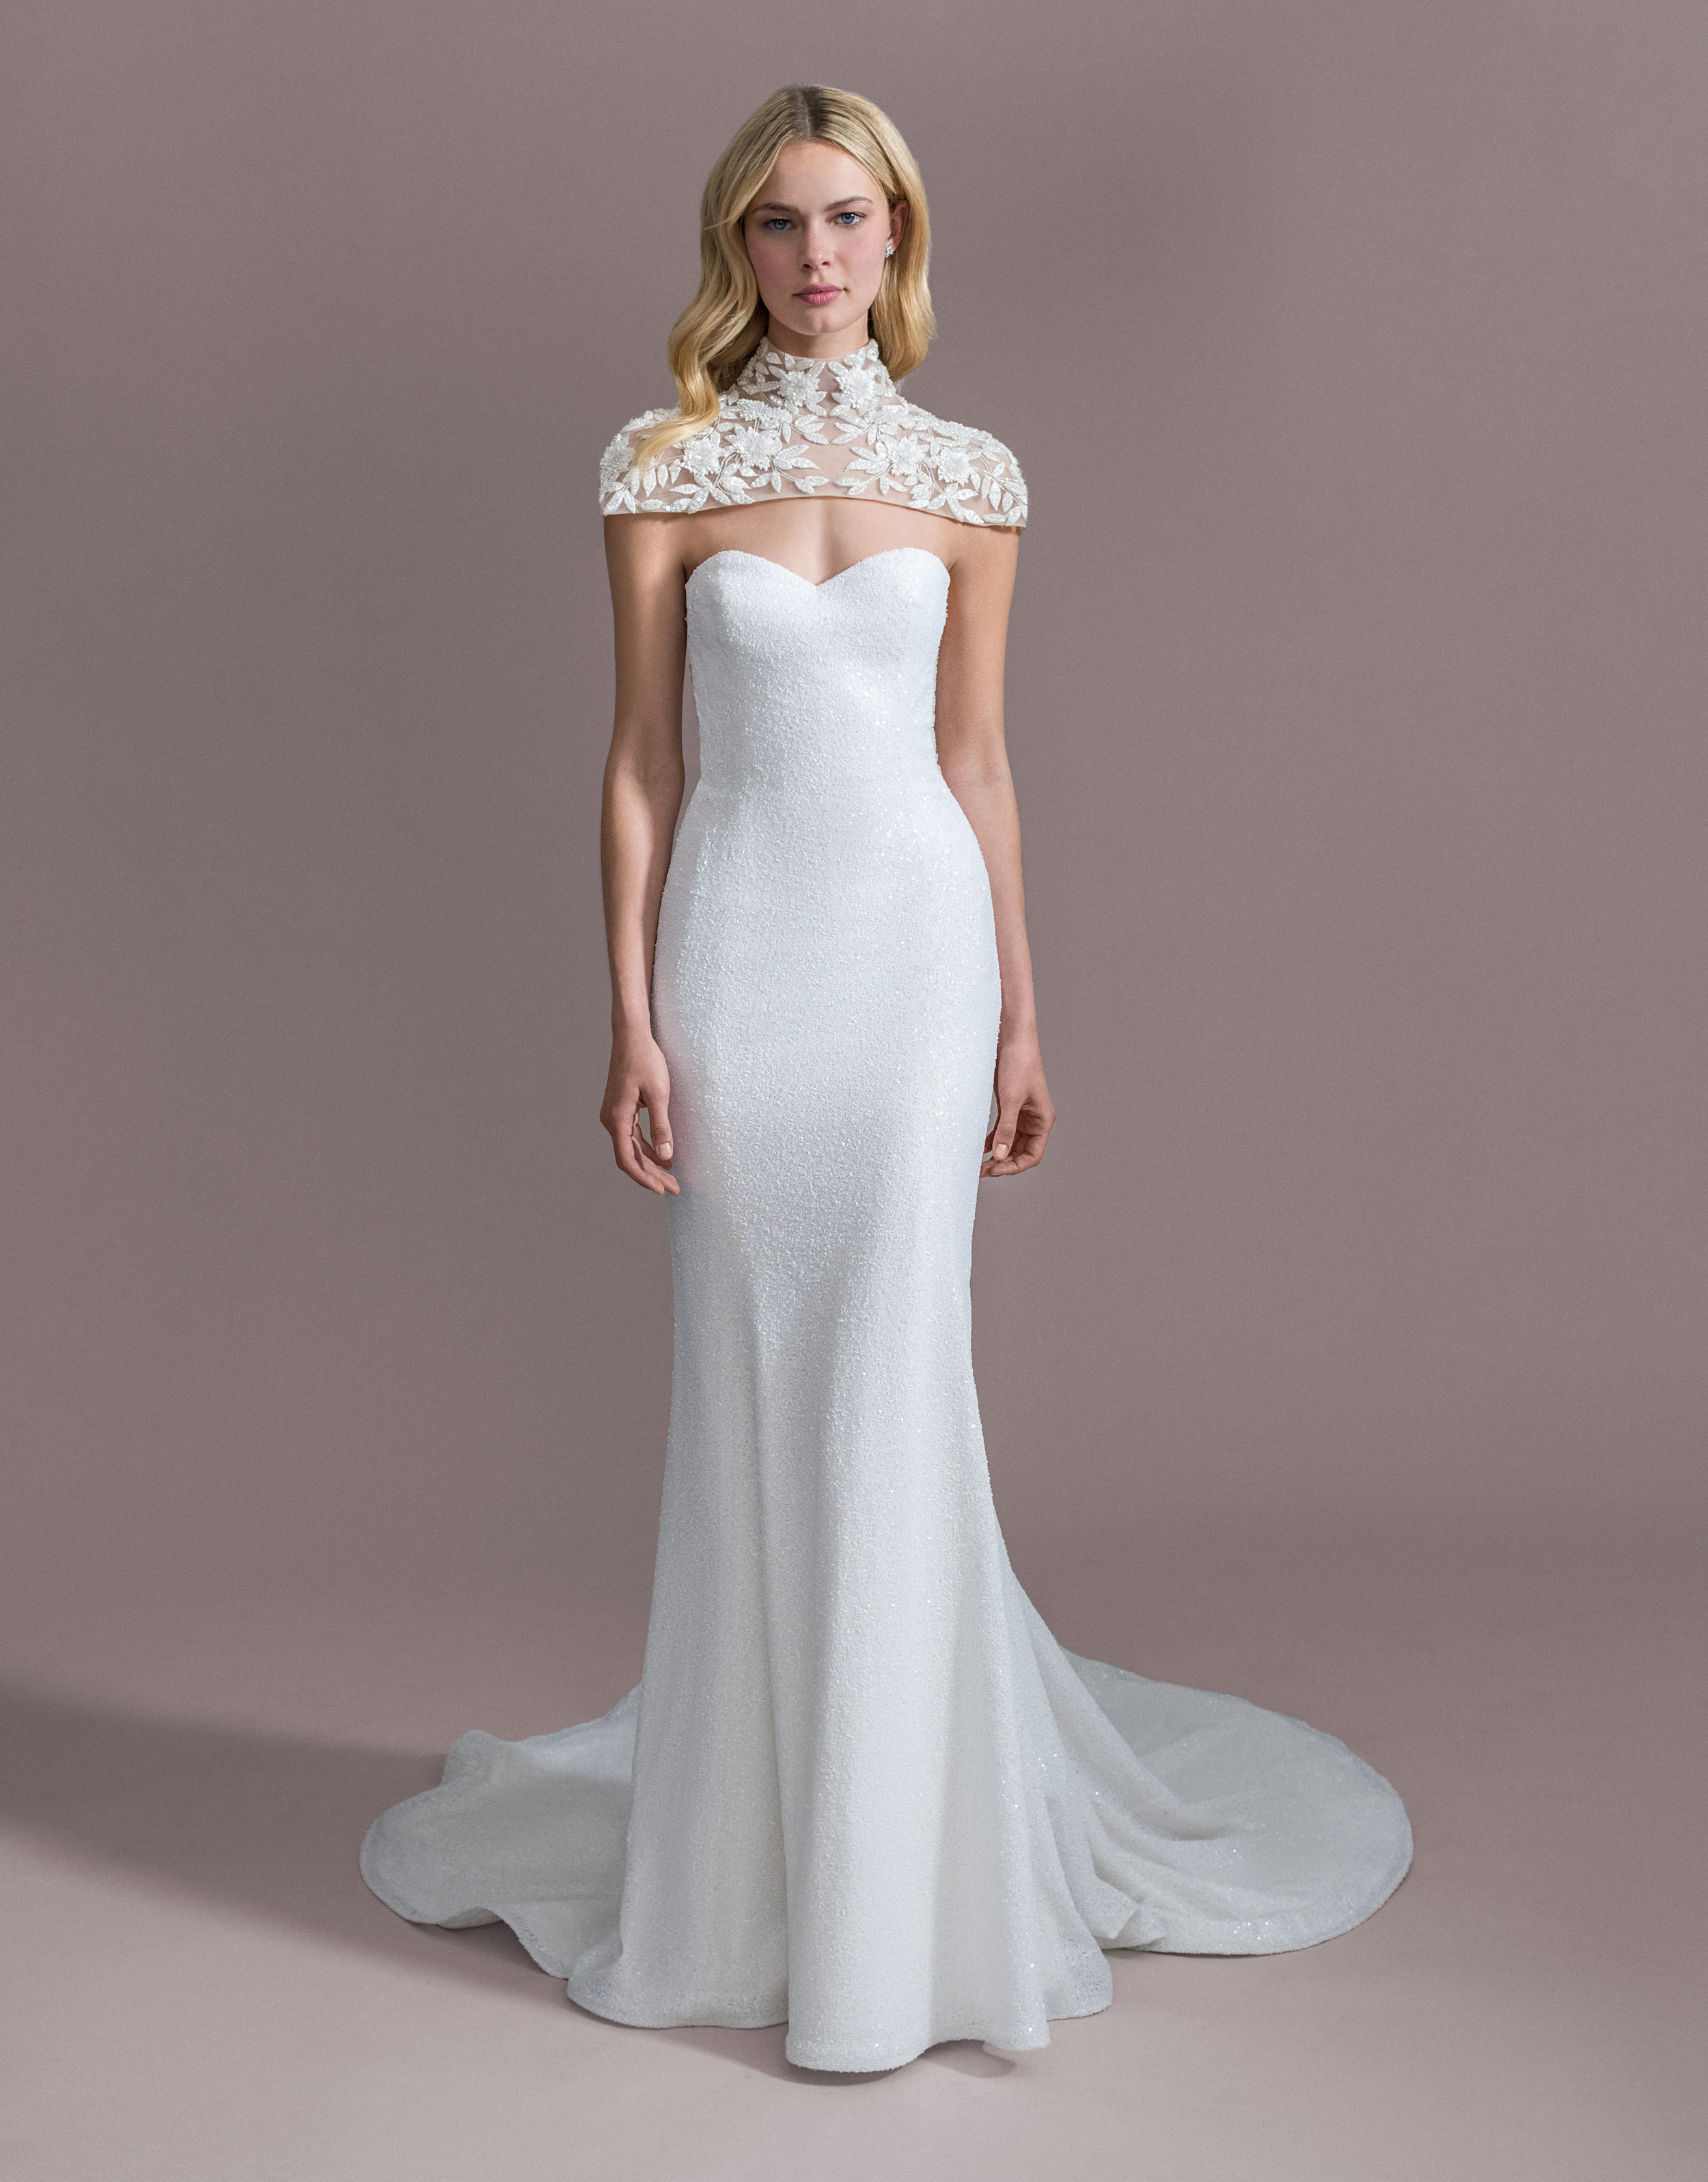 allison-webb-bridal-fall-2019-style-4959-dhalia.jpg